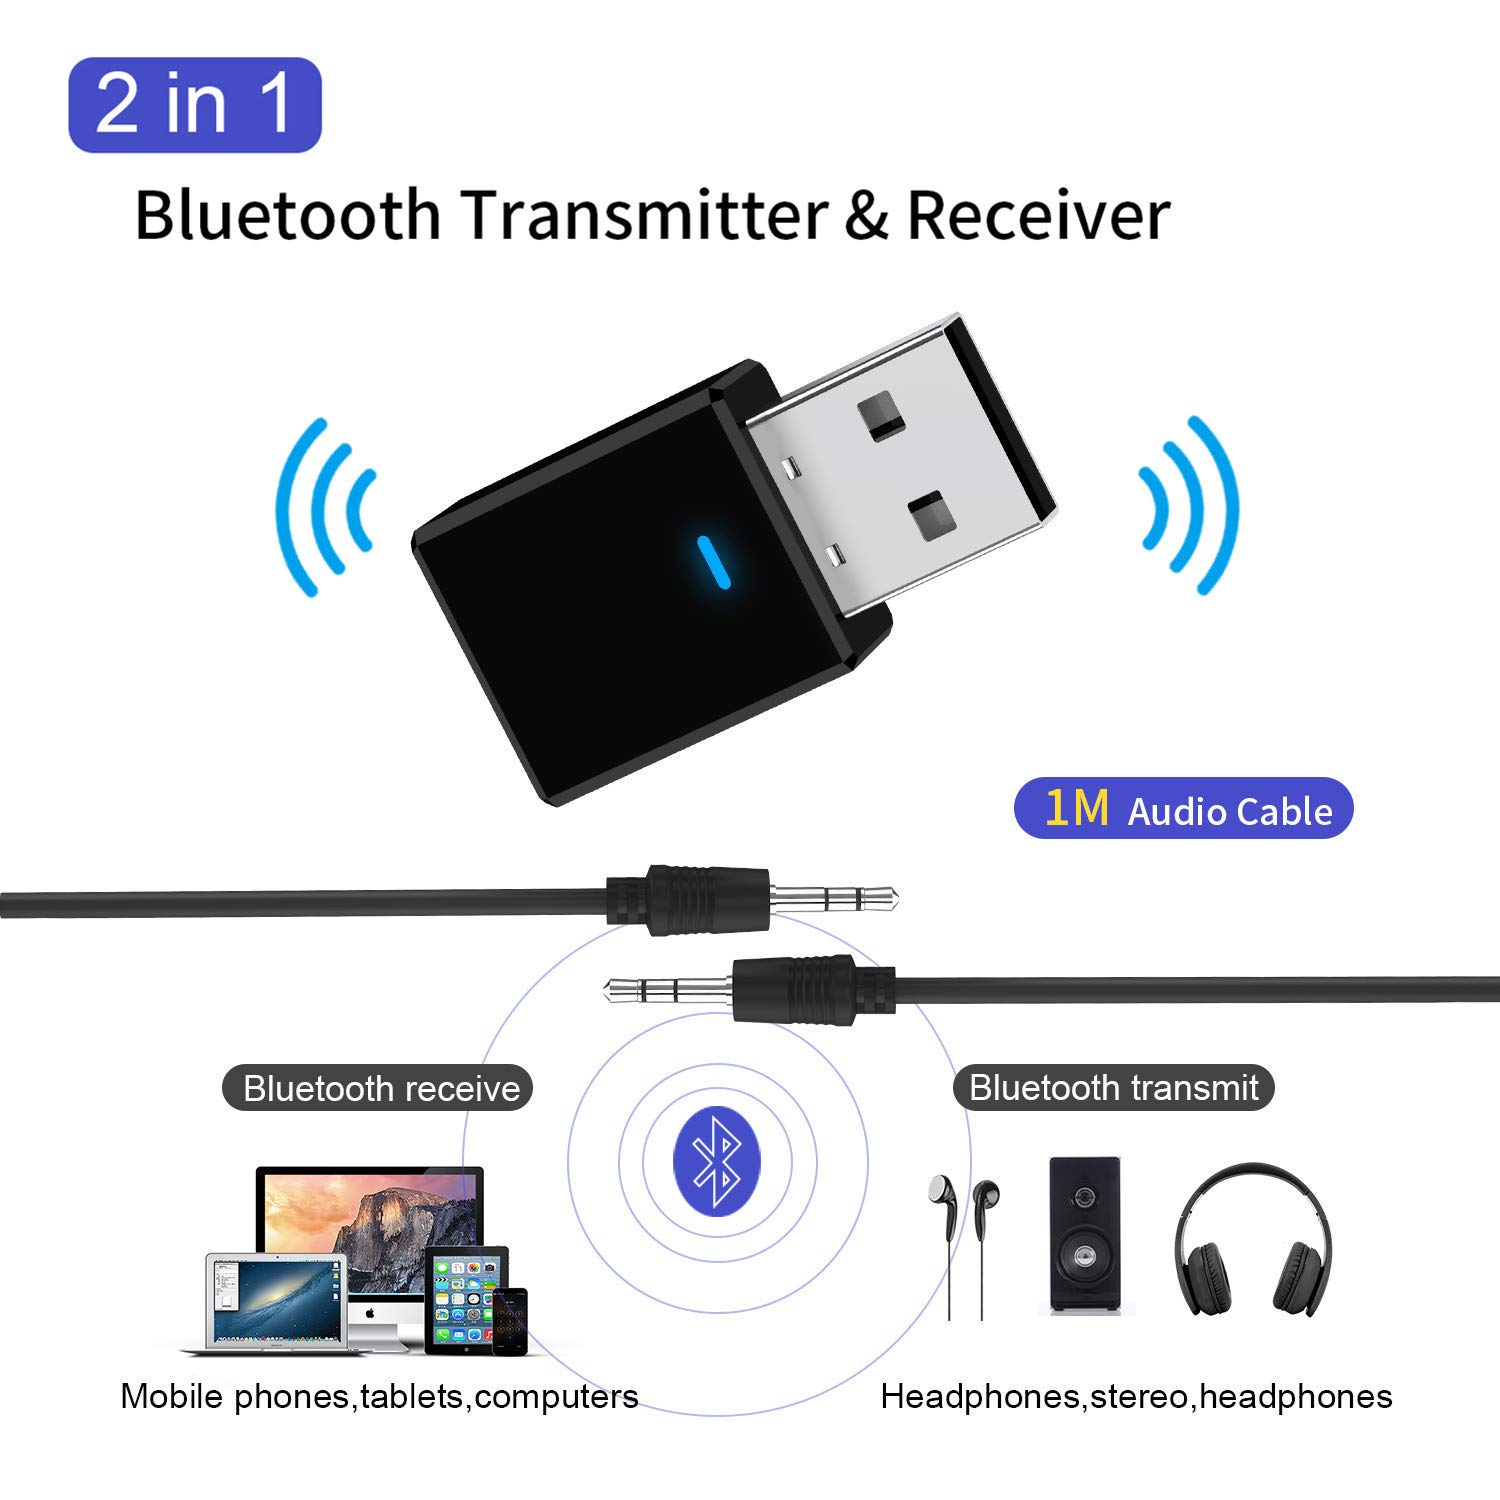 DishyKooker 5.0 Blue-Tooth Transmitter Receiver Mini 3.5mm AUX Stereo Wireless Blue-Tooth Adapter for Car Music Blue-Tooth Transmitter for TV